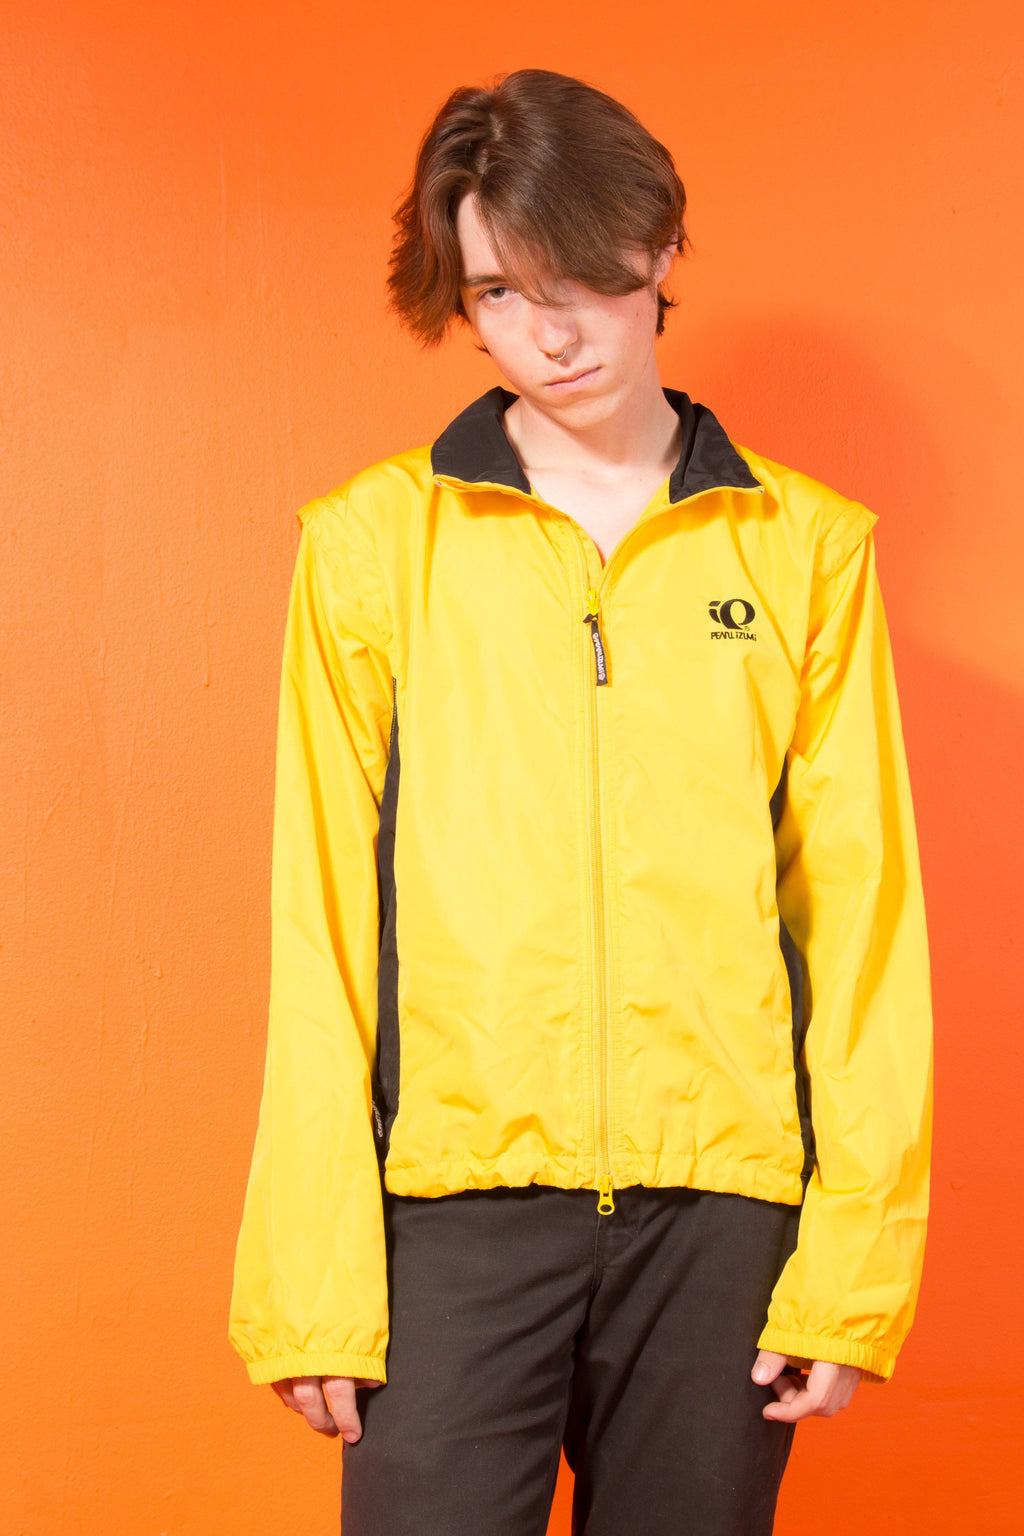 Vintage - Yellow track jacket